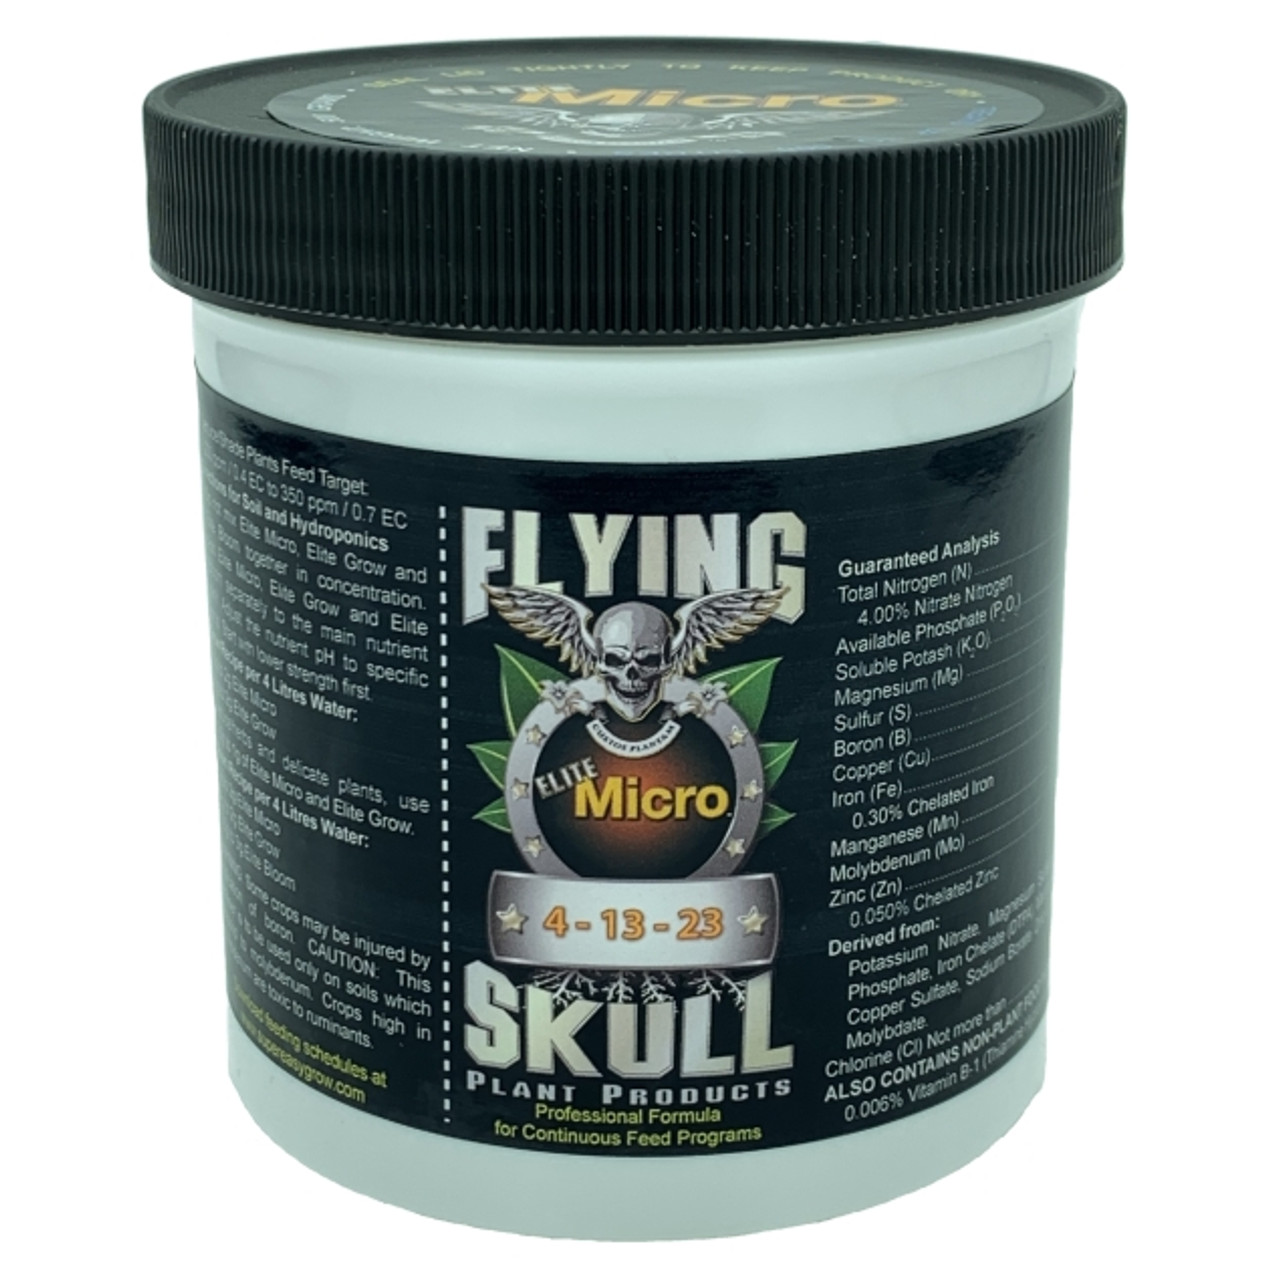 Flying Skull Elite Micro 500g Container